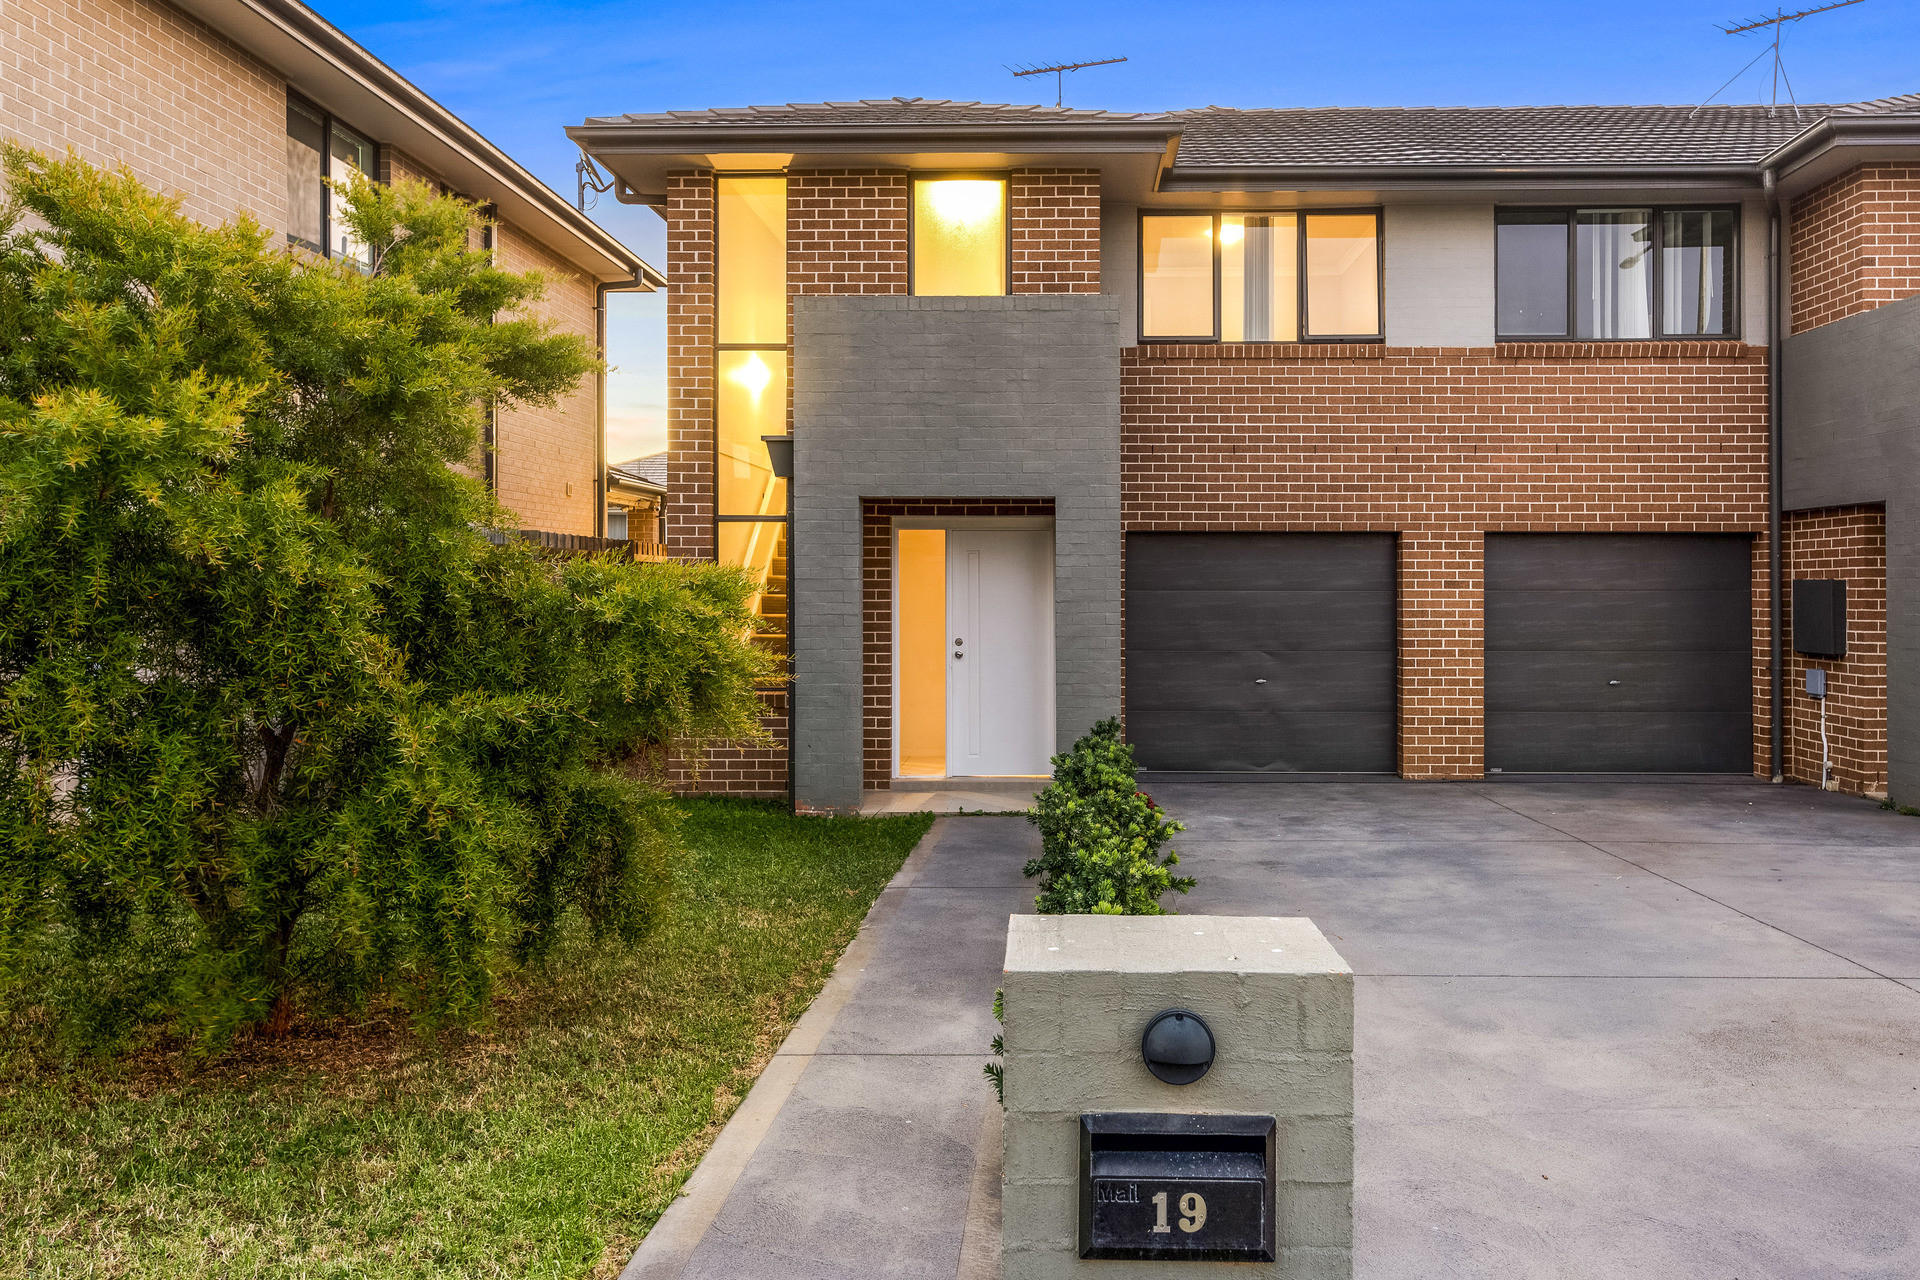 New To Market! Spacious 3 Bedroom, Double Storey Home!